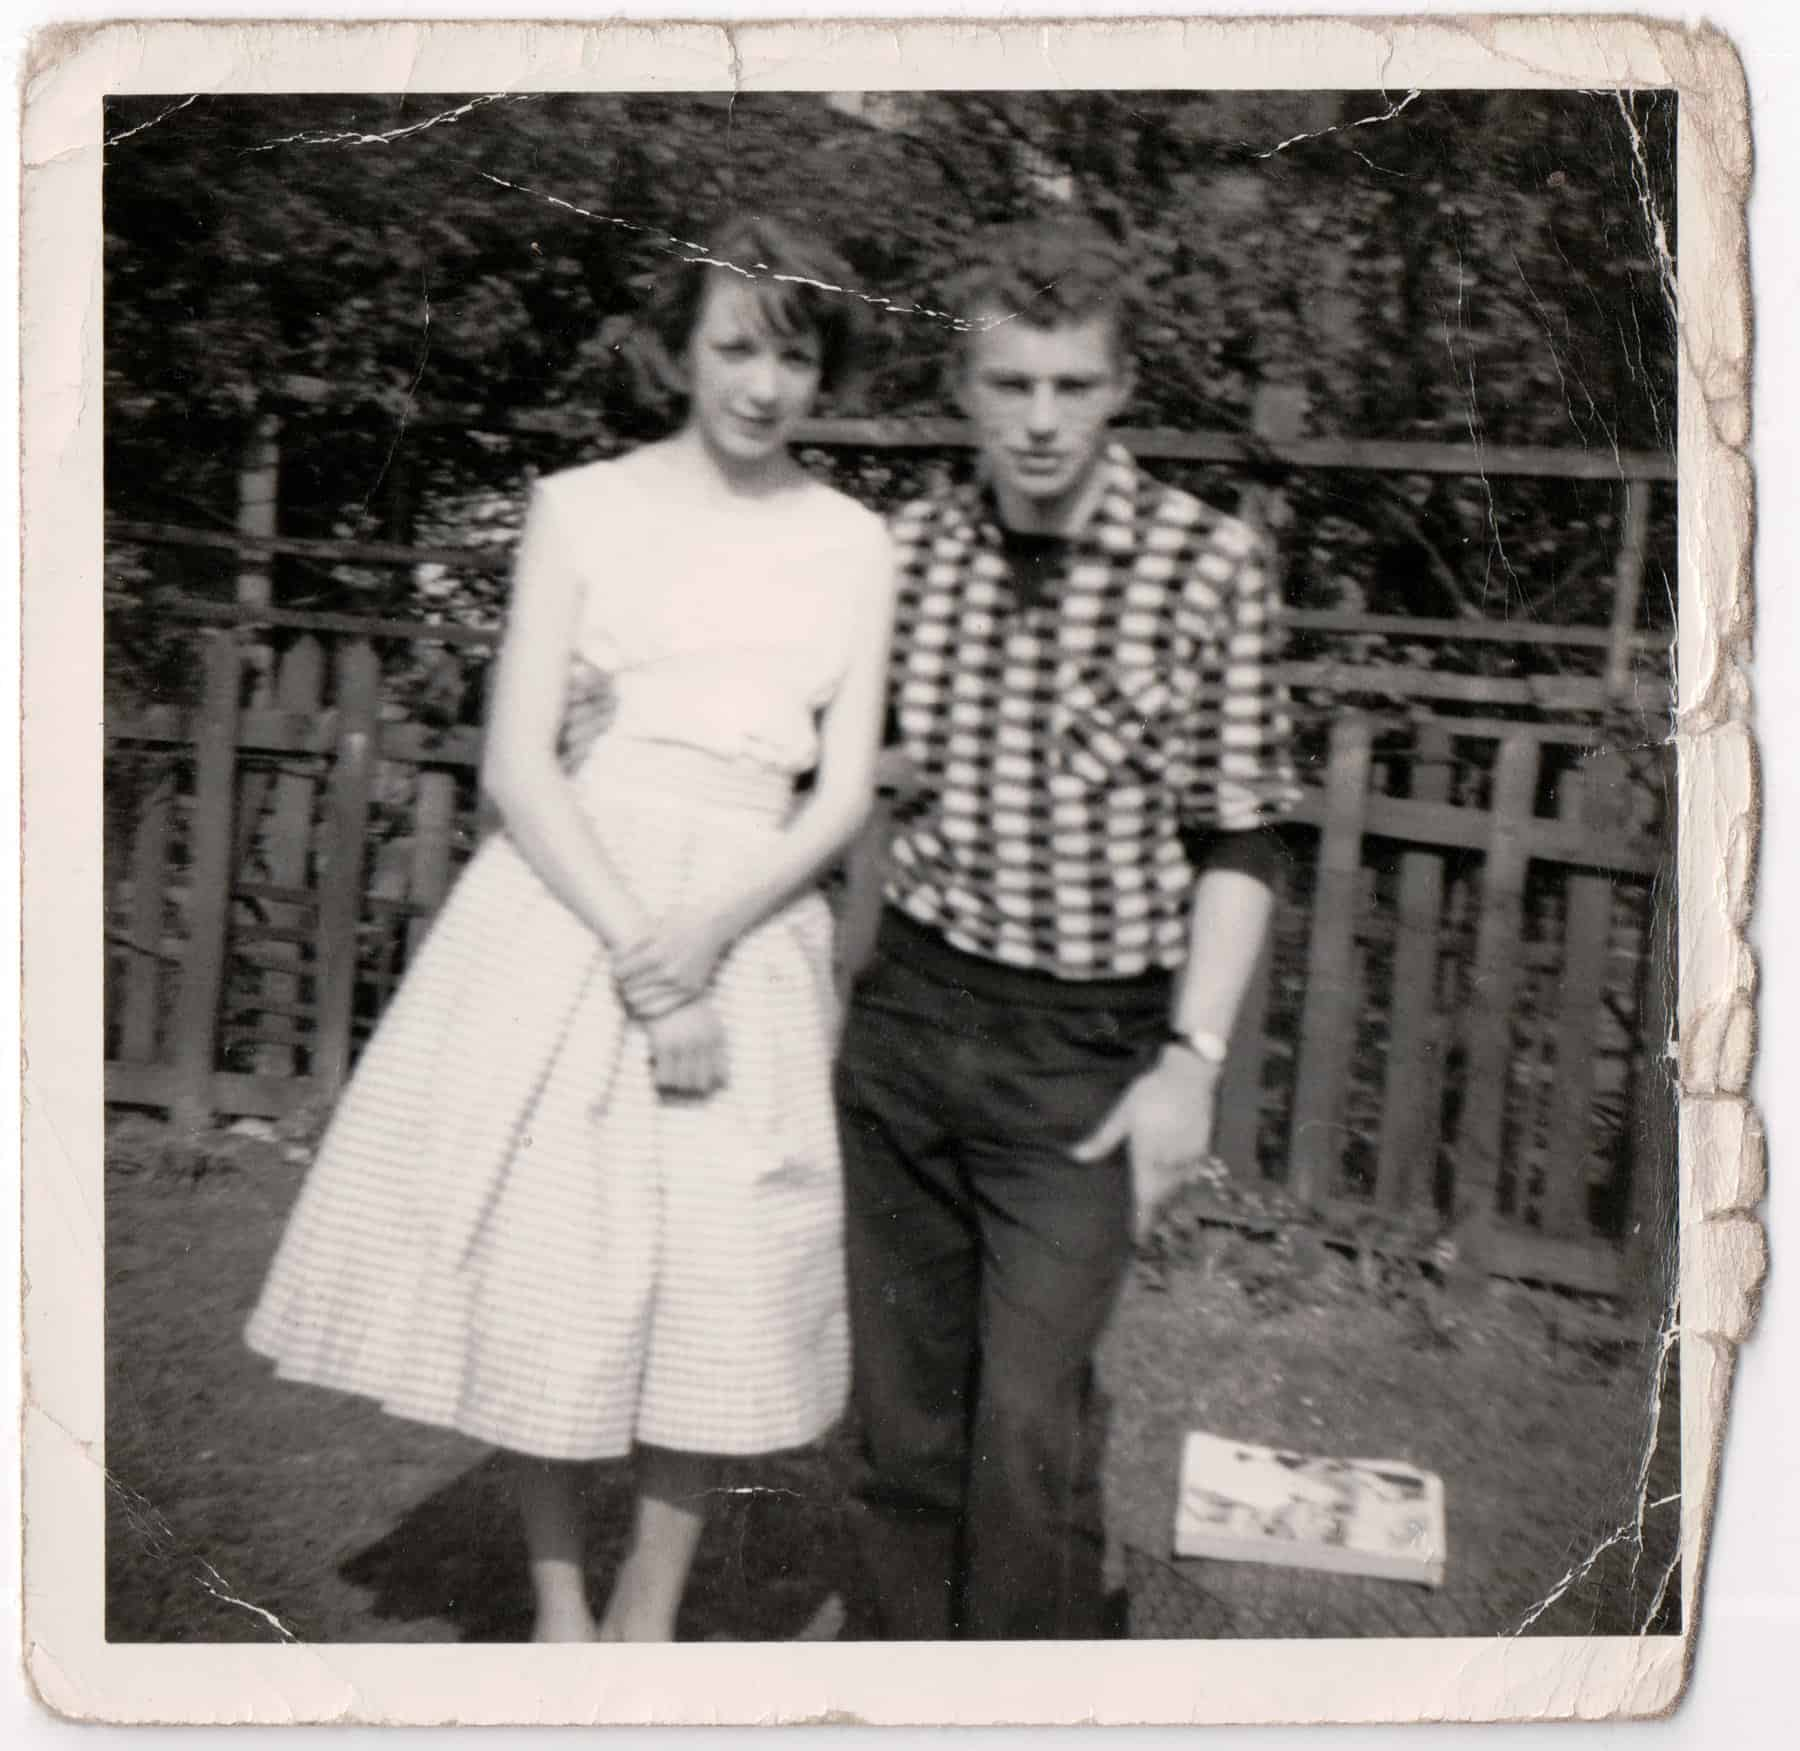 Dorothy and Gary in Gary's mum's garden before they got married.